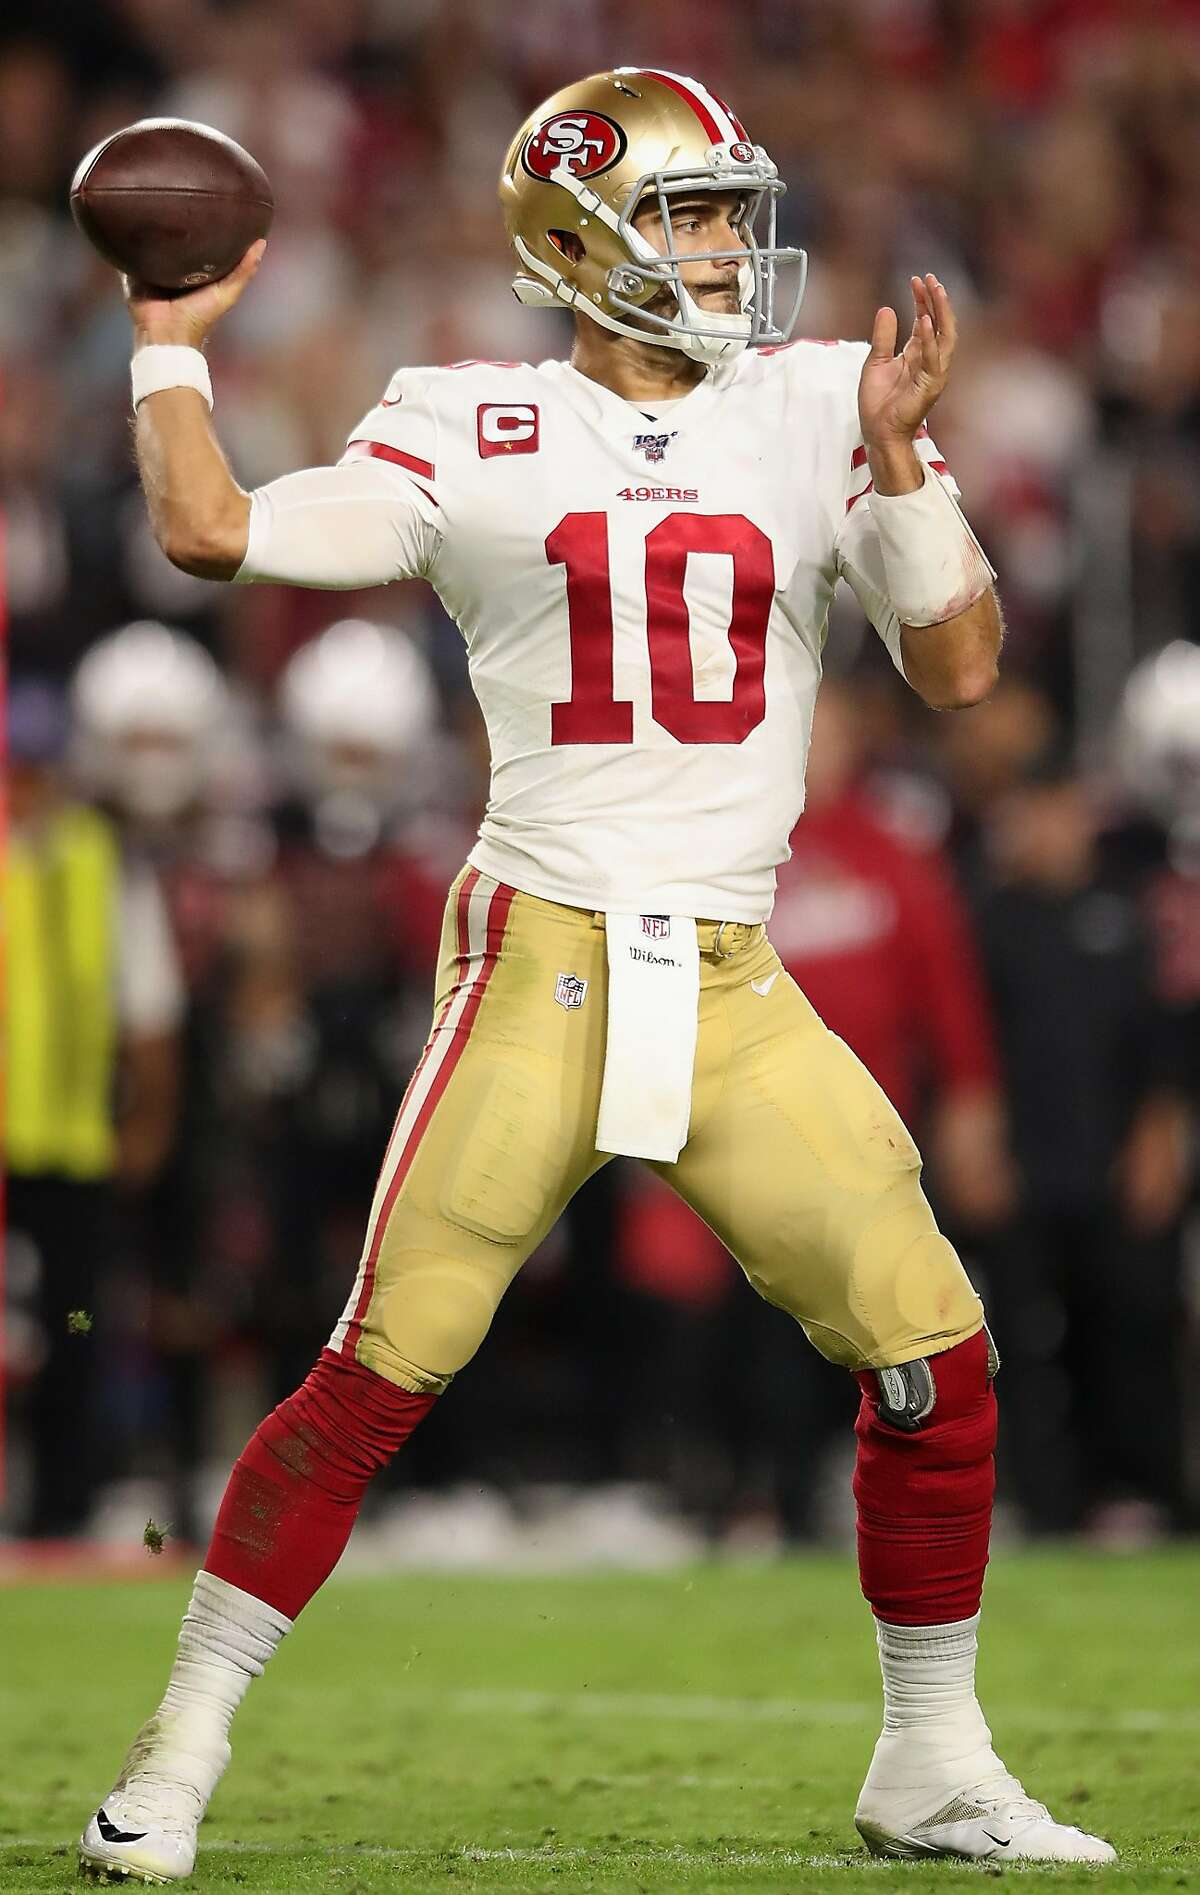 GLENDALE, ARIZONA - OCTOBER 31: Quarterback Jimmy Garoppolo #10 of the San Francisco 49ers throws a pass during the second half of the NFL game against the Arizona Cardinals at State Farm Stadium on October 31, 2019 in Glendale, Arizona. The 49ers defeated the Cardinals 28-25. (Photo by Christian Petersen/Getty Images)